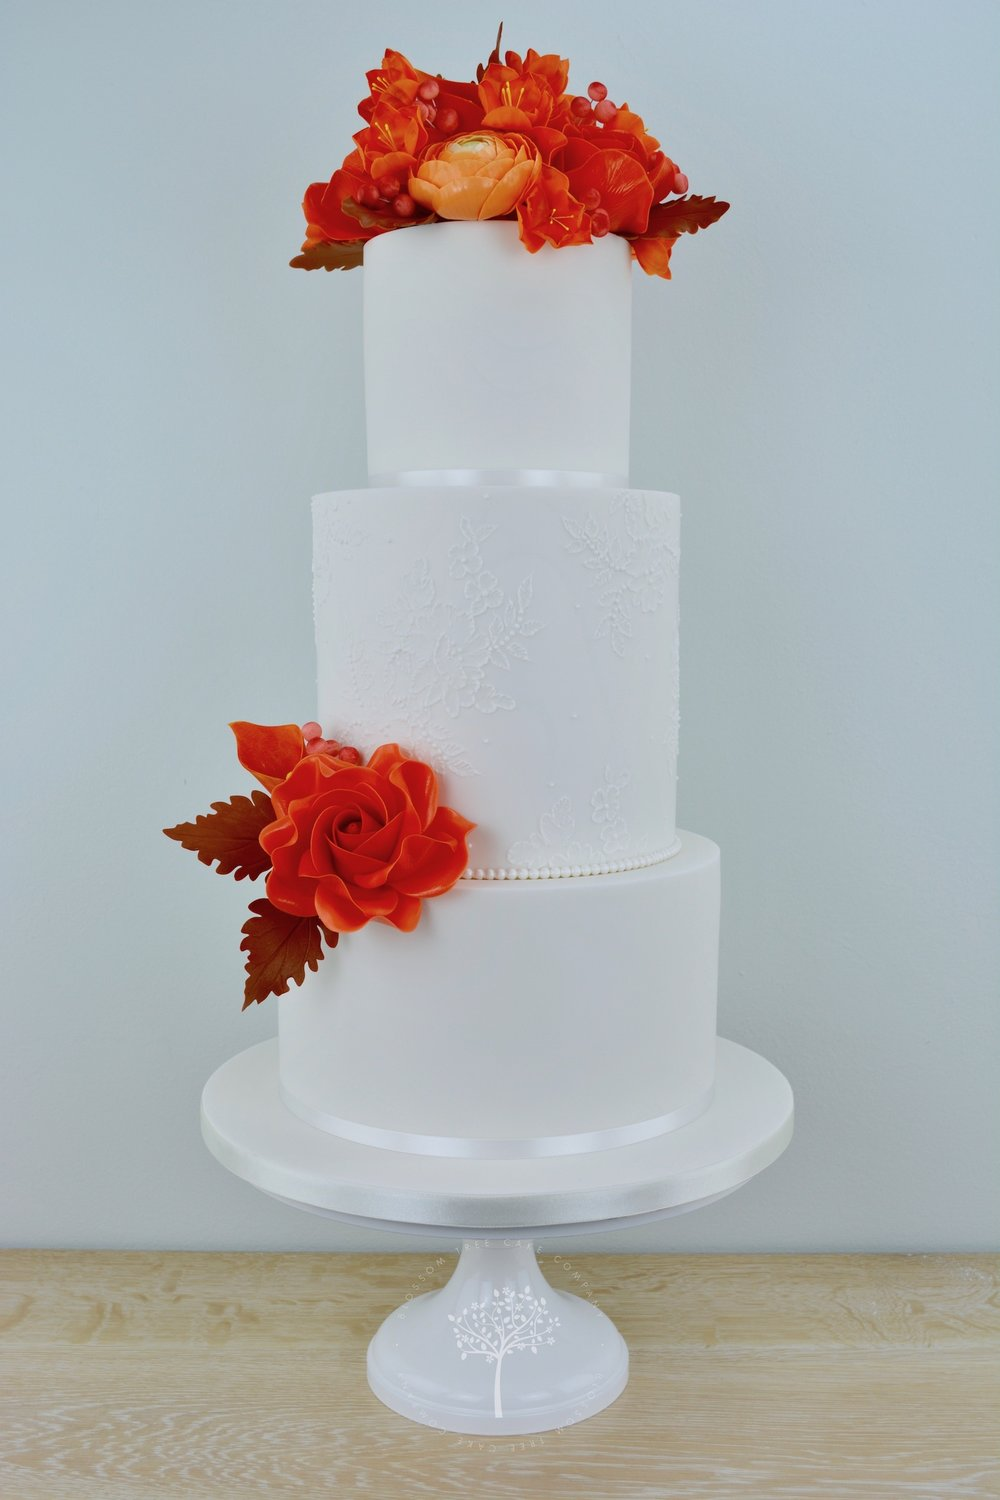 Autumn Lace wedding cake by Blossom Tree Cake Company Harrogate North Yorkshire.jpg